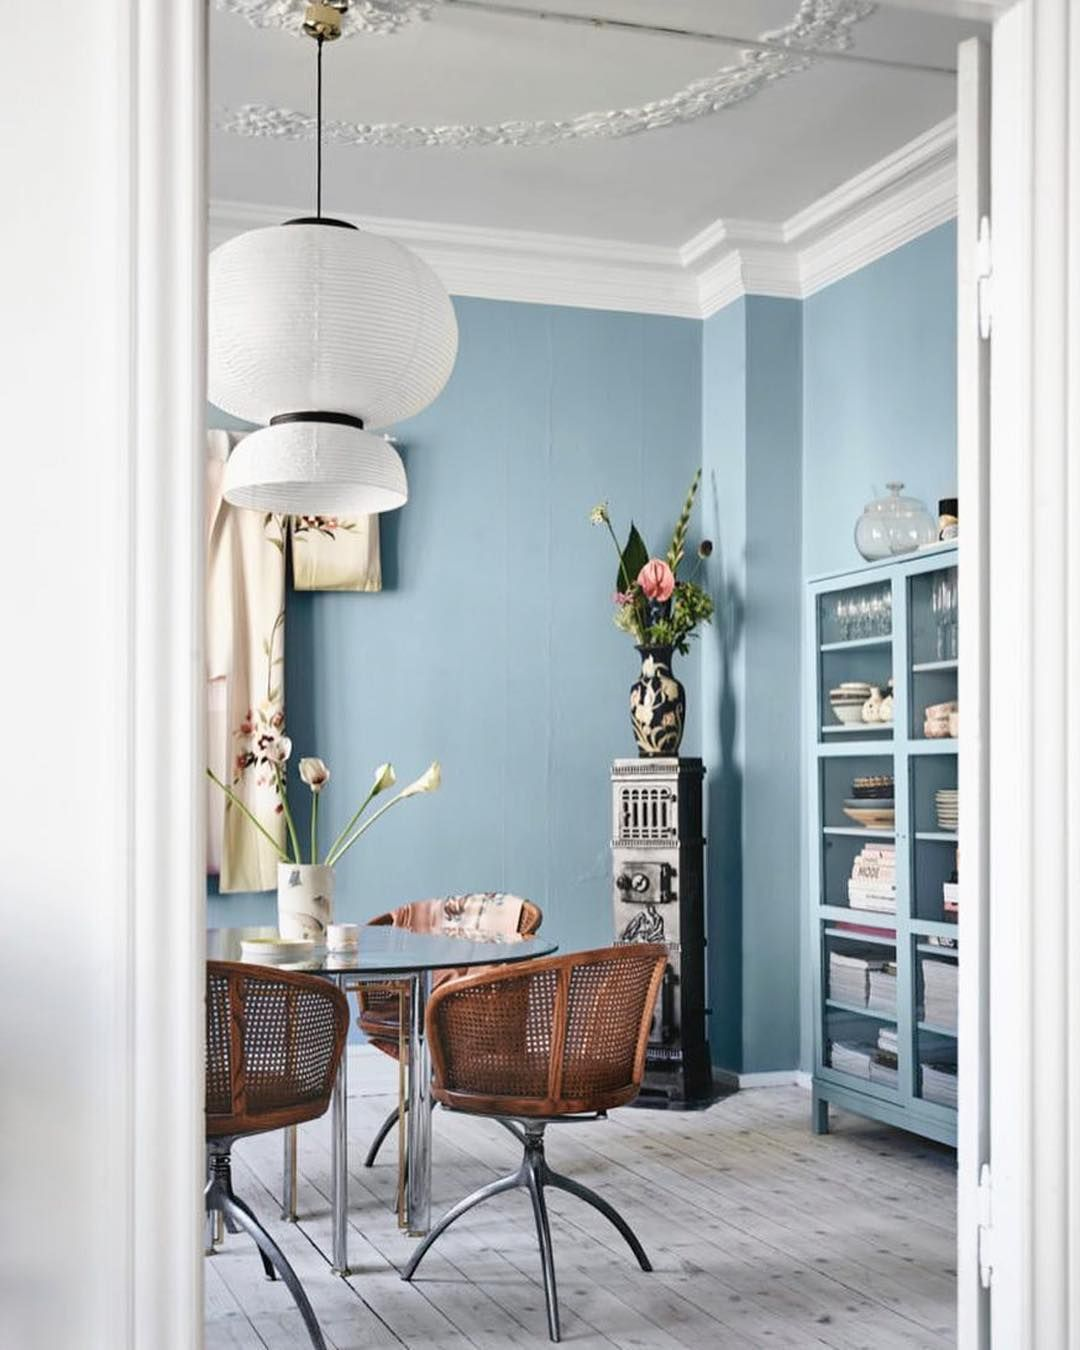 Eclectic Vintage Dining Room Decor With Muted Dusty Blue Wall